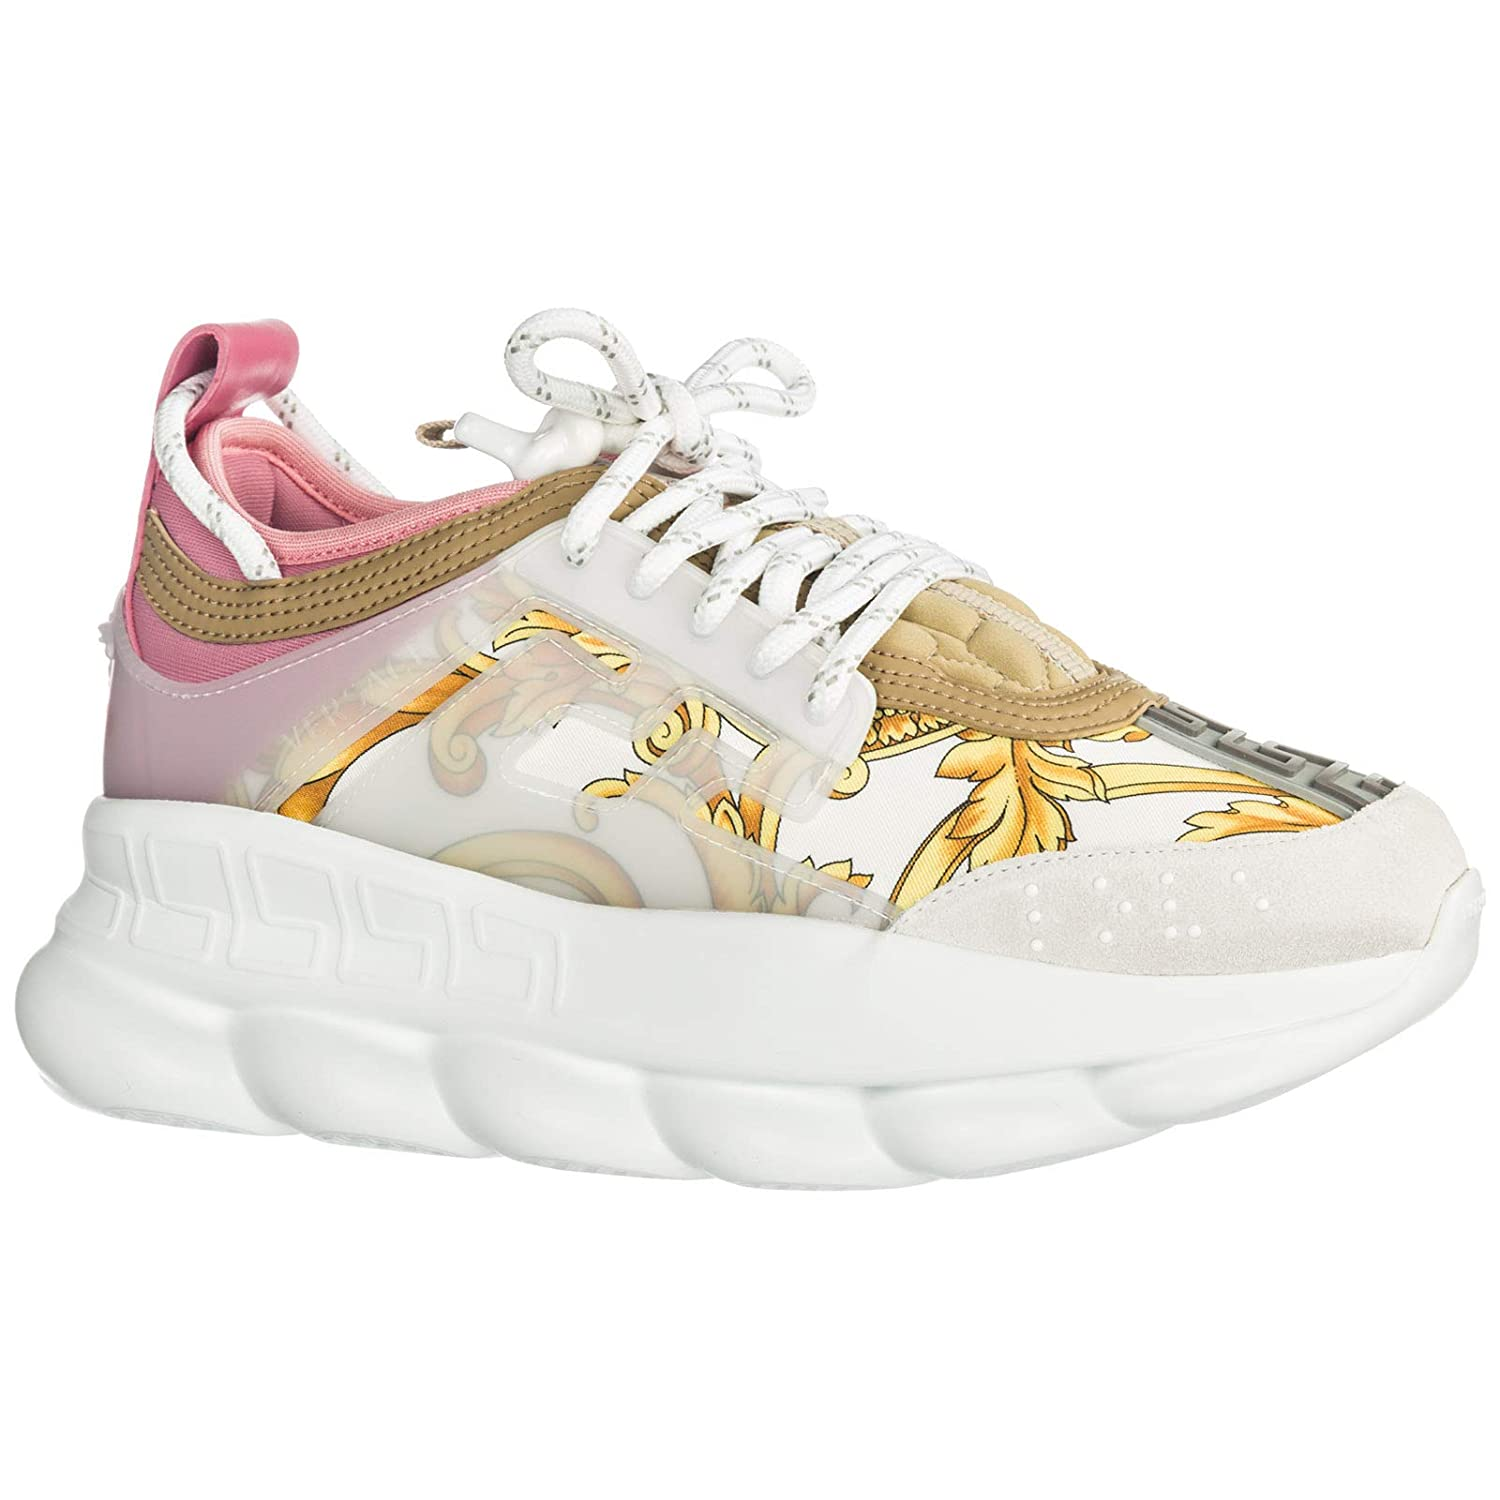 59f1fd9fc8 Versace Women Chain Reaction Sneakers Bianco + oro + Shell Pink 2 UK ...